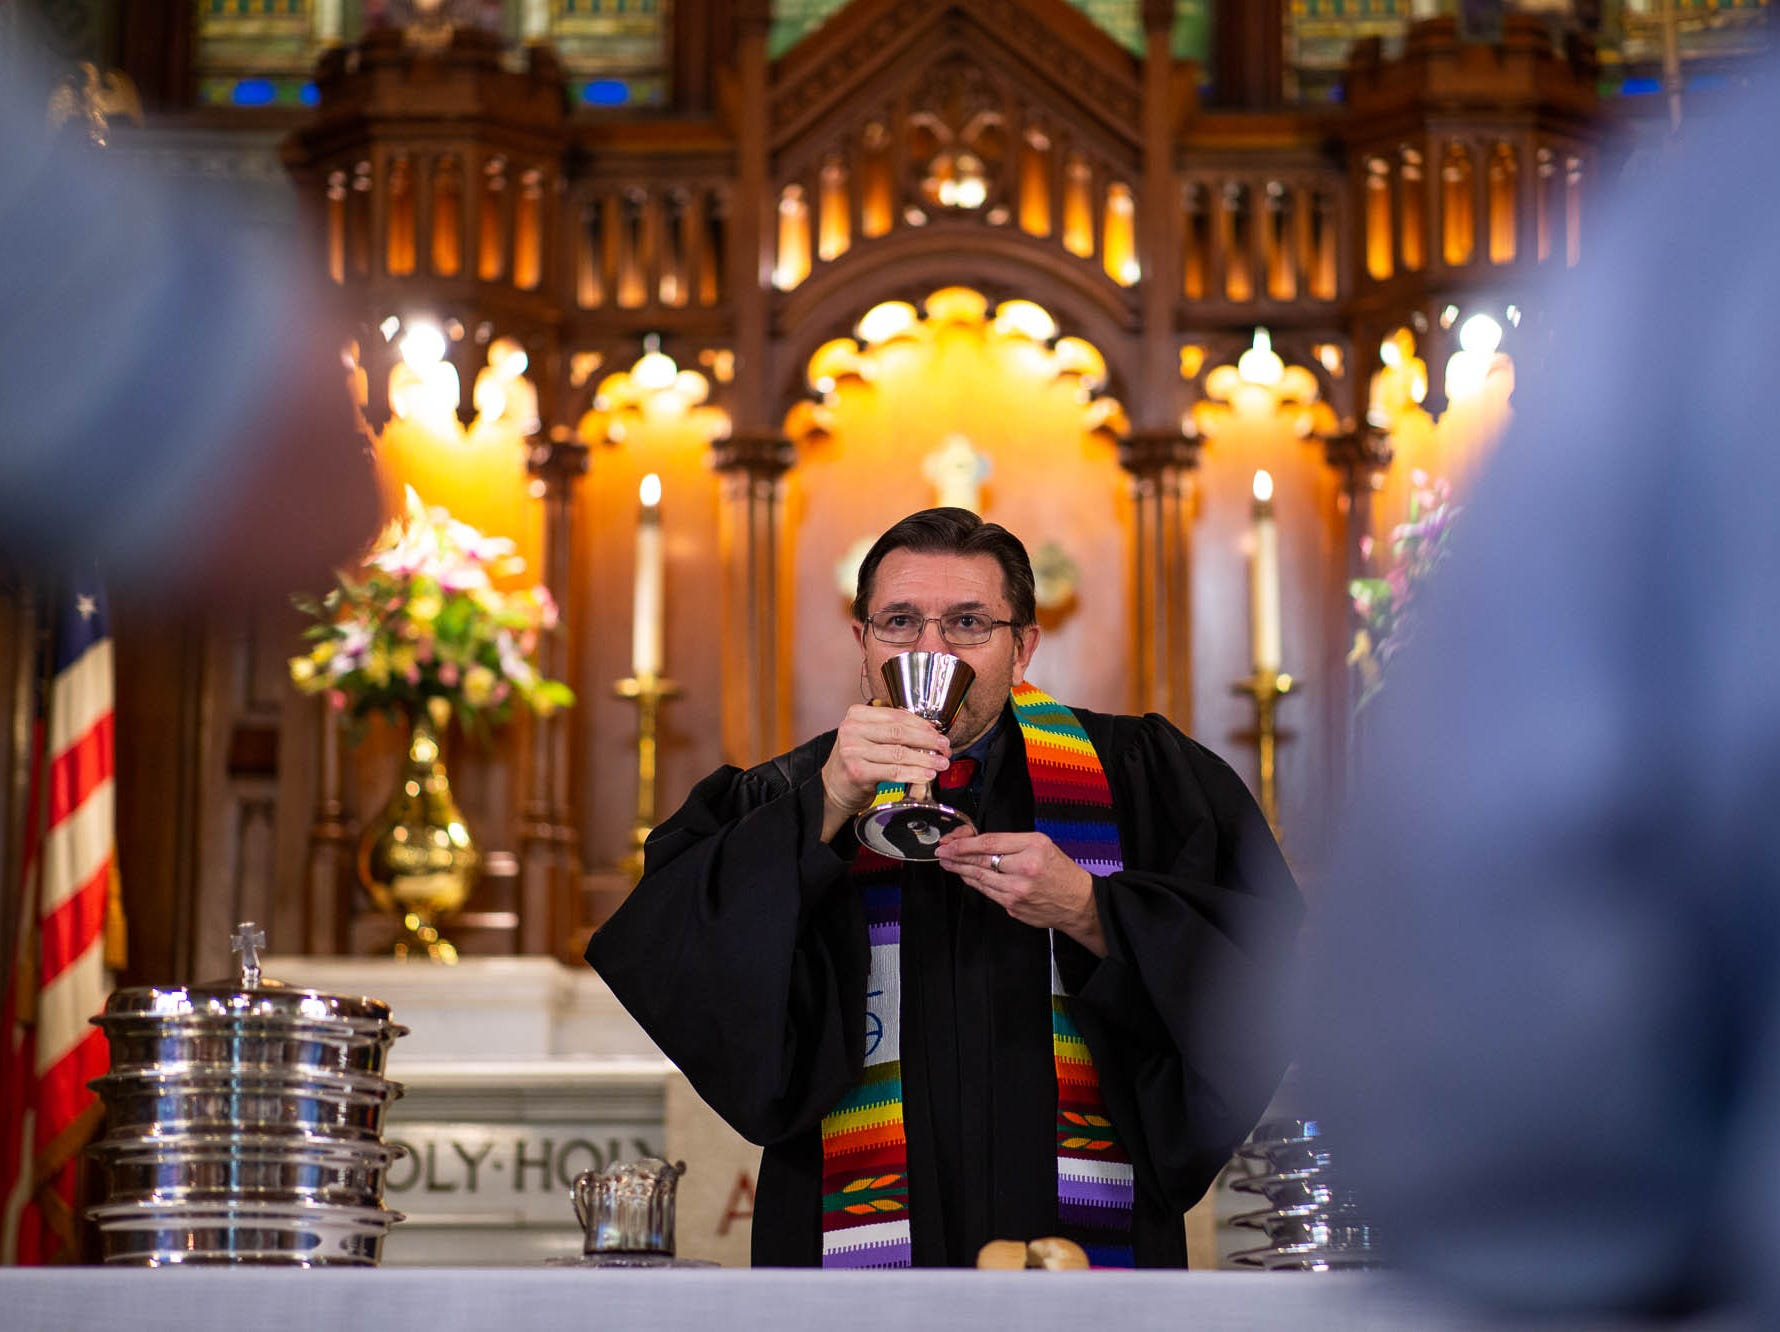 Reverend Russell Clark leads his congregation in communion during a diversity service at the Emmanuel United Church of Christ, Sunday, April 7, 2019, in Hanover. Reverend Clark is the first openly gay pastor at the church.